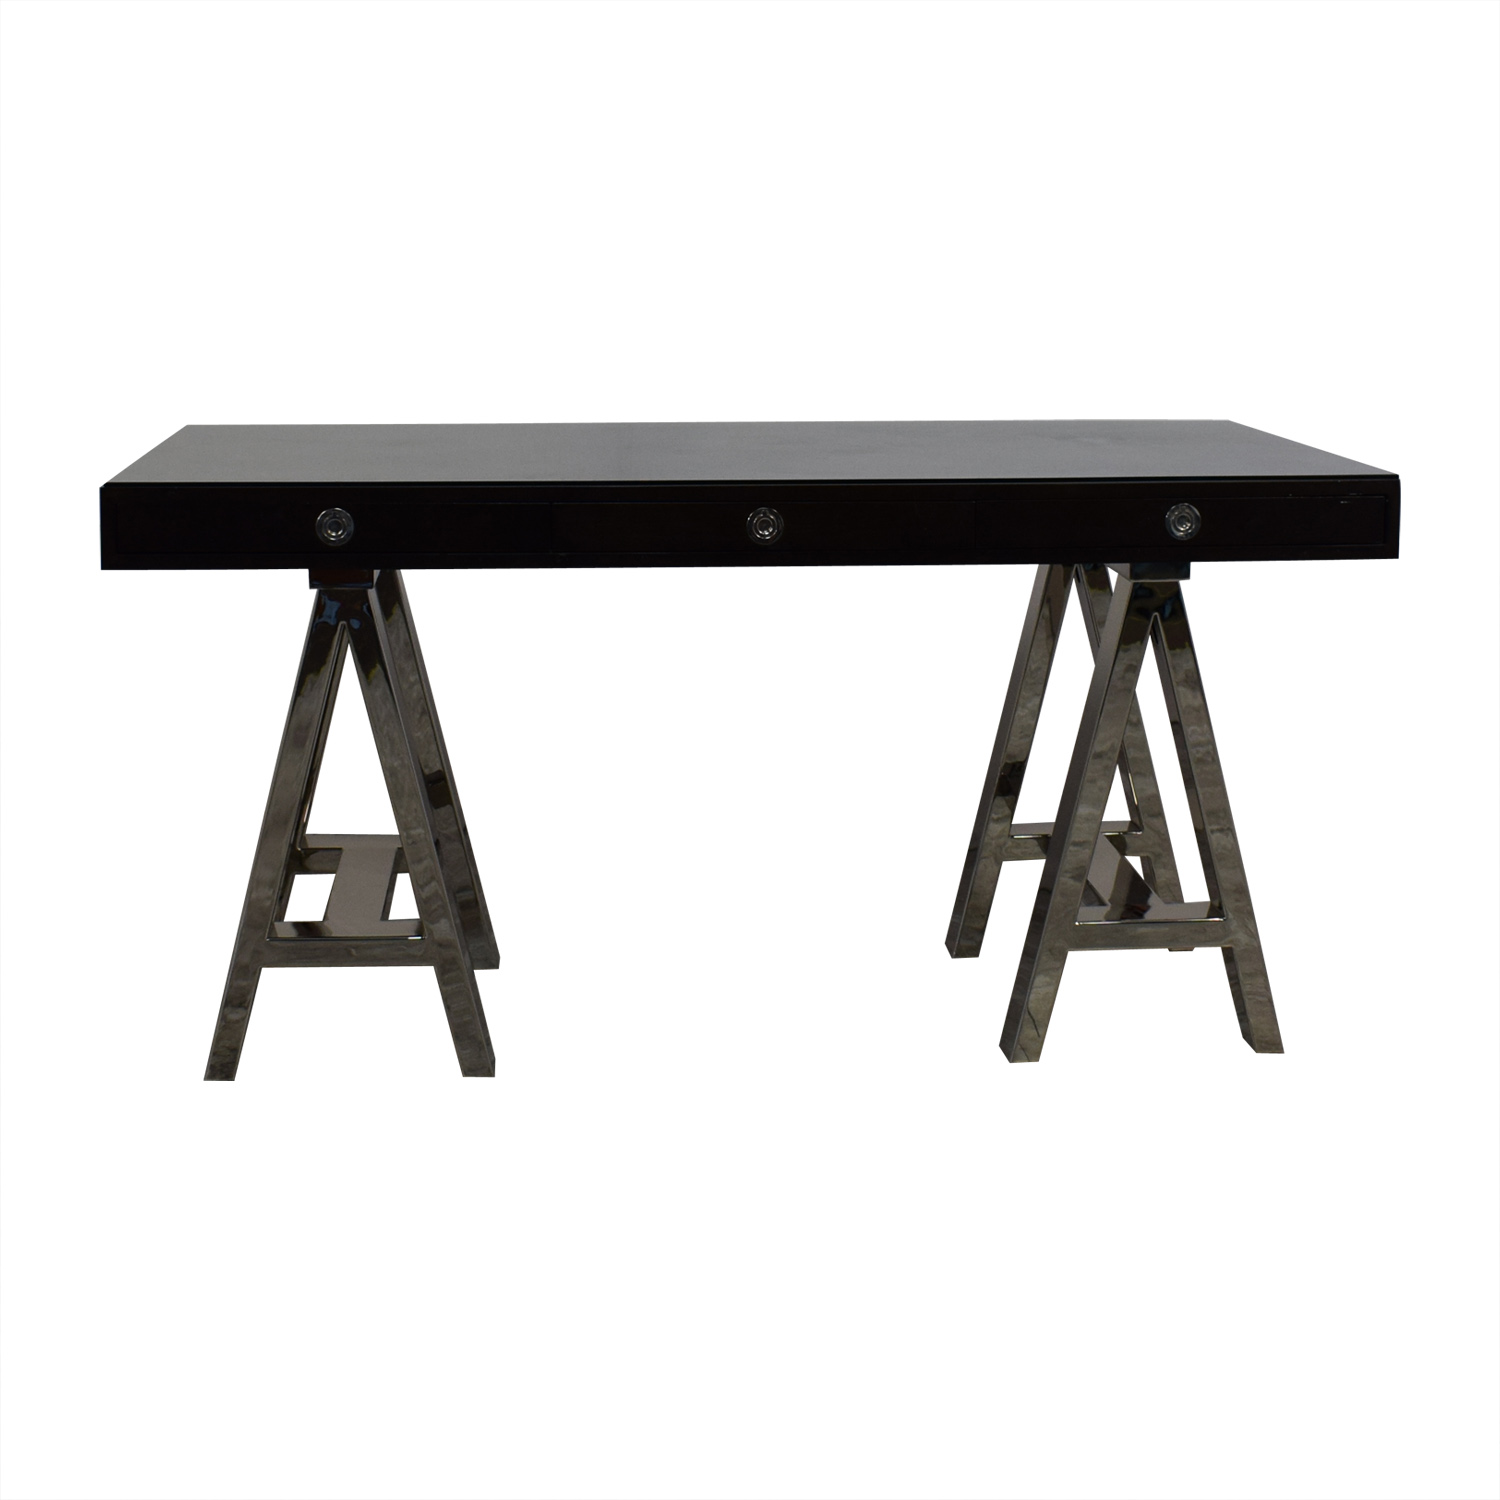 Williams Sonoma Williams Sonoma Mason Wood Top Desk on sale